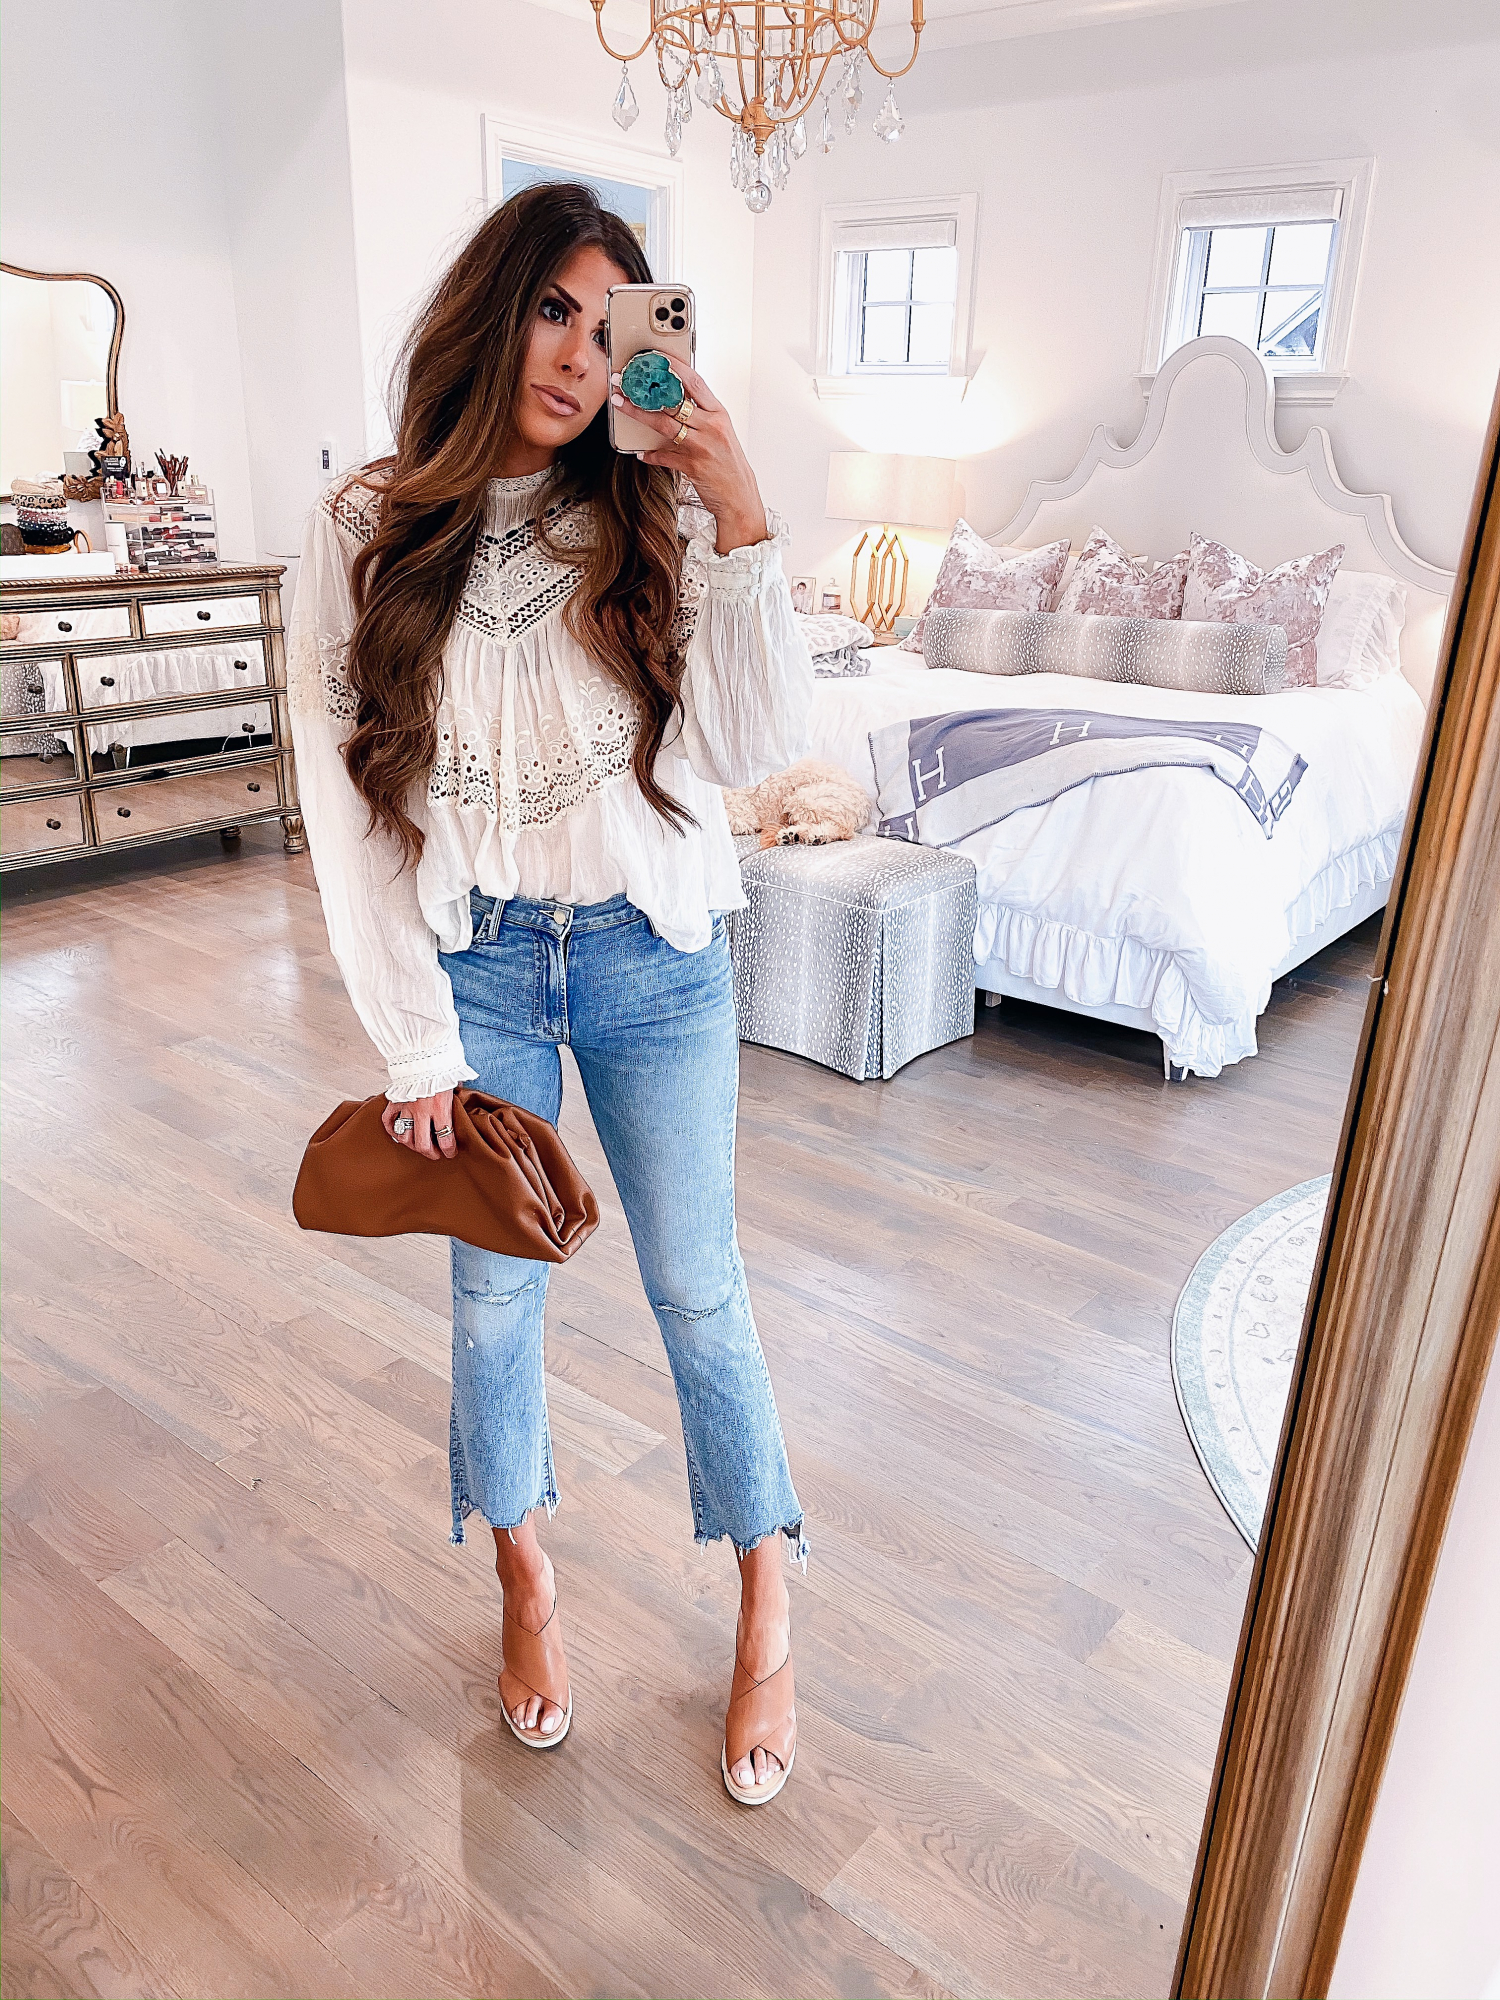 Instagram Recap by popular US lifestyle blog, The Sweetest Thing: image of Emily Gemma wearing a Free People top, Nordstrom Mother The Insider Ripped Chew Hem Crop Bootcut Jeans, PORT BUTTON STUD EARRINGS, Nordstrom Pillow Talk Lip Cheat Lip Liner CHARLOTTE TILBURY, Nordstrom Hot Lips Lipstick CHARLOTTE TILBURY, Nordstrom Gloss Luxe Moisturizing Lipgloss TOM FORD, Steve Madden FLORETTA COGNAC LEATHER wedges, and holding a Net-A-Porter BOTTEGA VENETA The Pouch small gathered leather clutch.